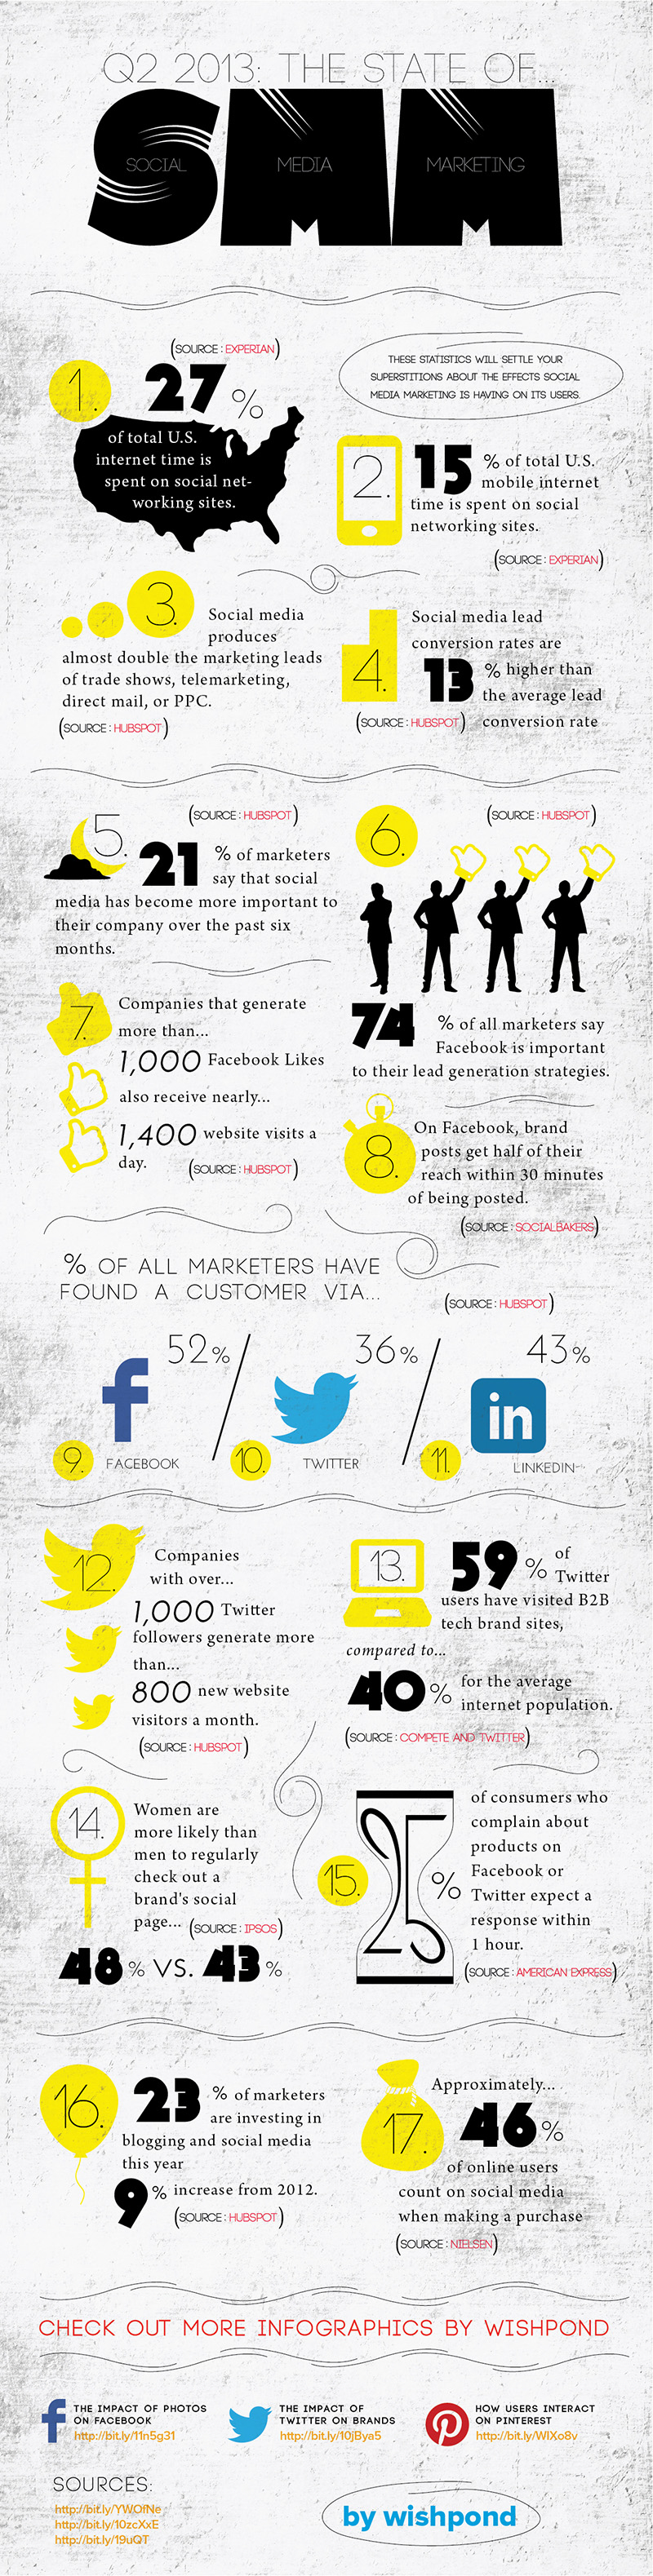 Q2-2013 - The State of Social Media Marketing